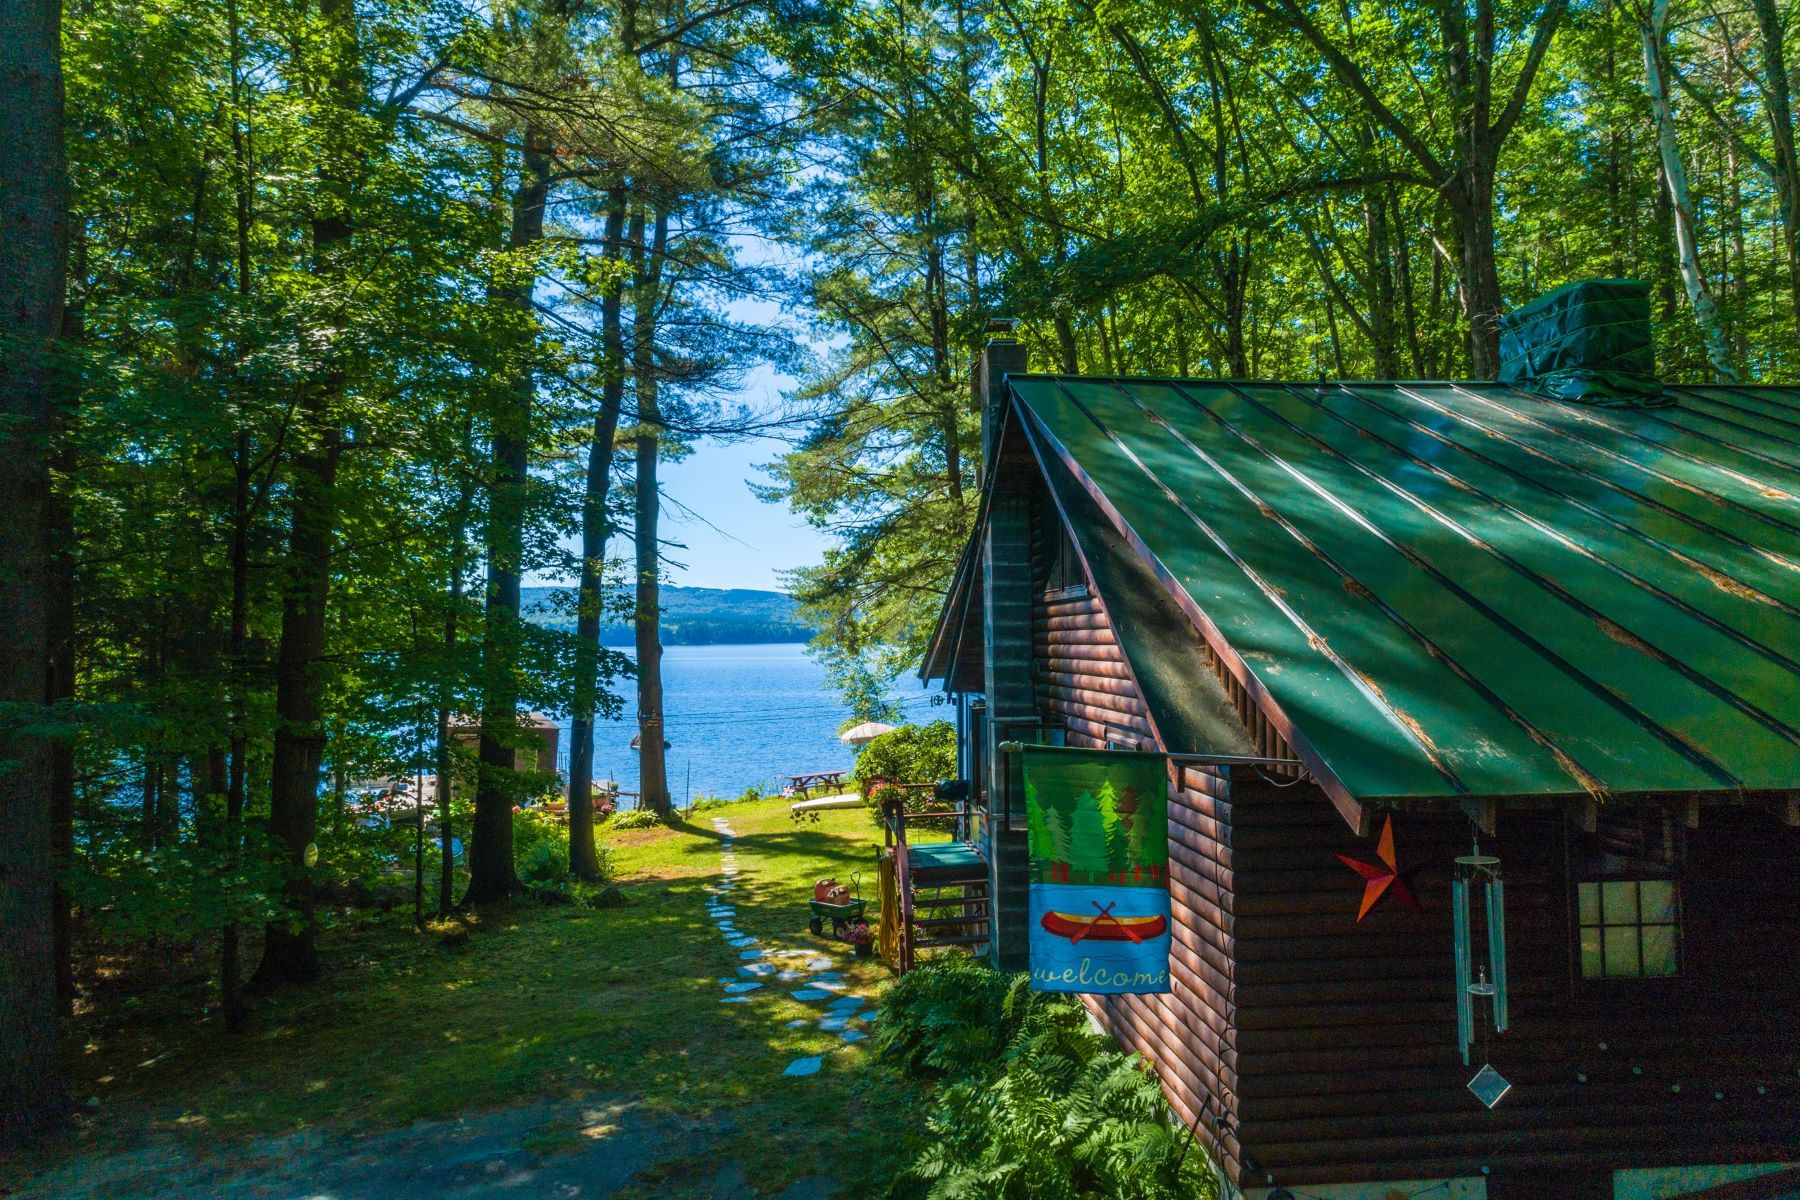 Single Family Home for Sale at Charming year-round log home on Lake Sunapee 78 Burkehaven Ln Sunapee, New Hampshire 03782 United States